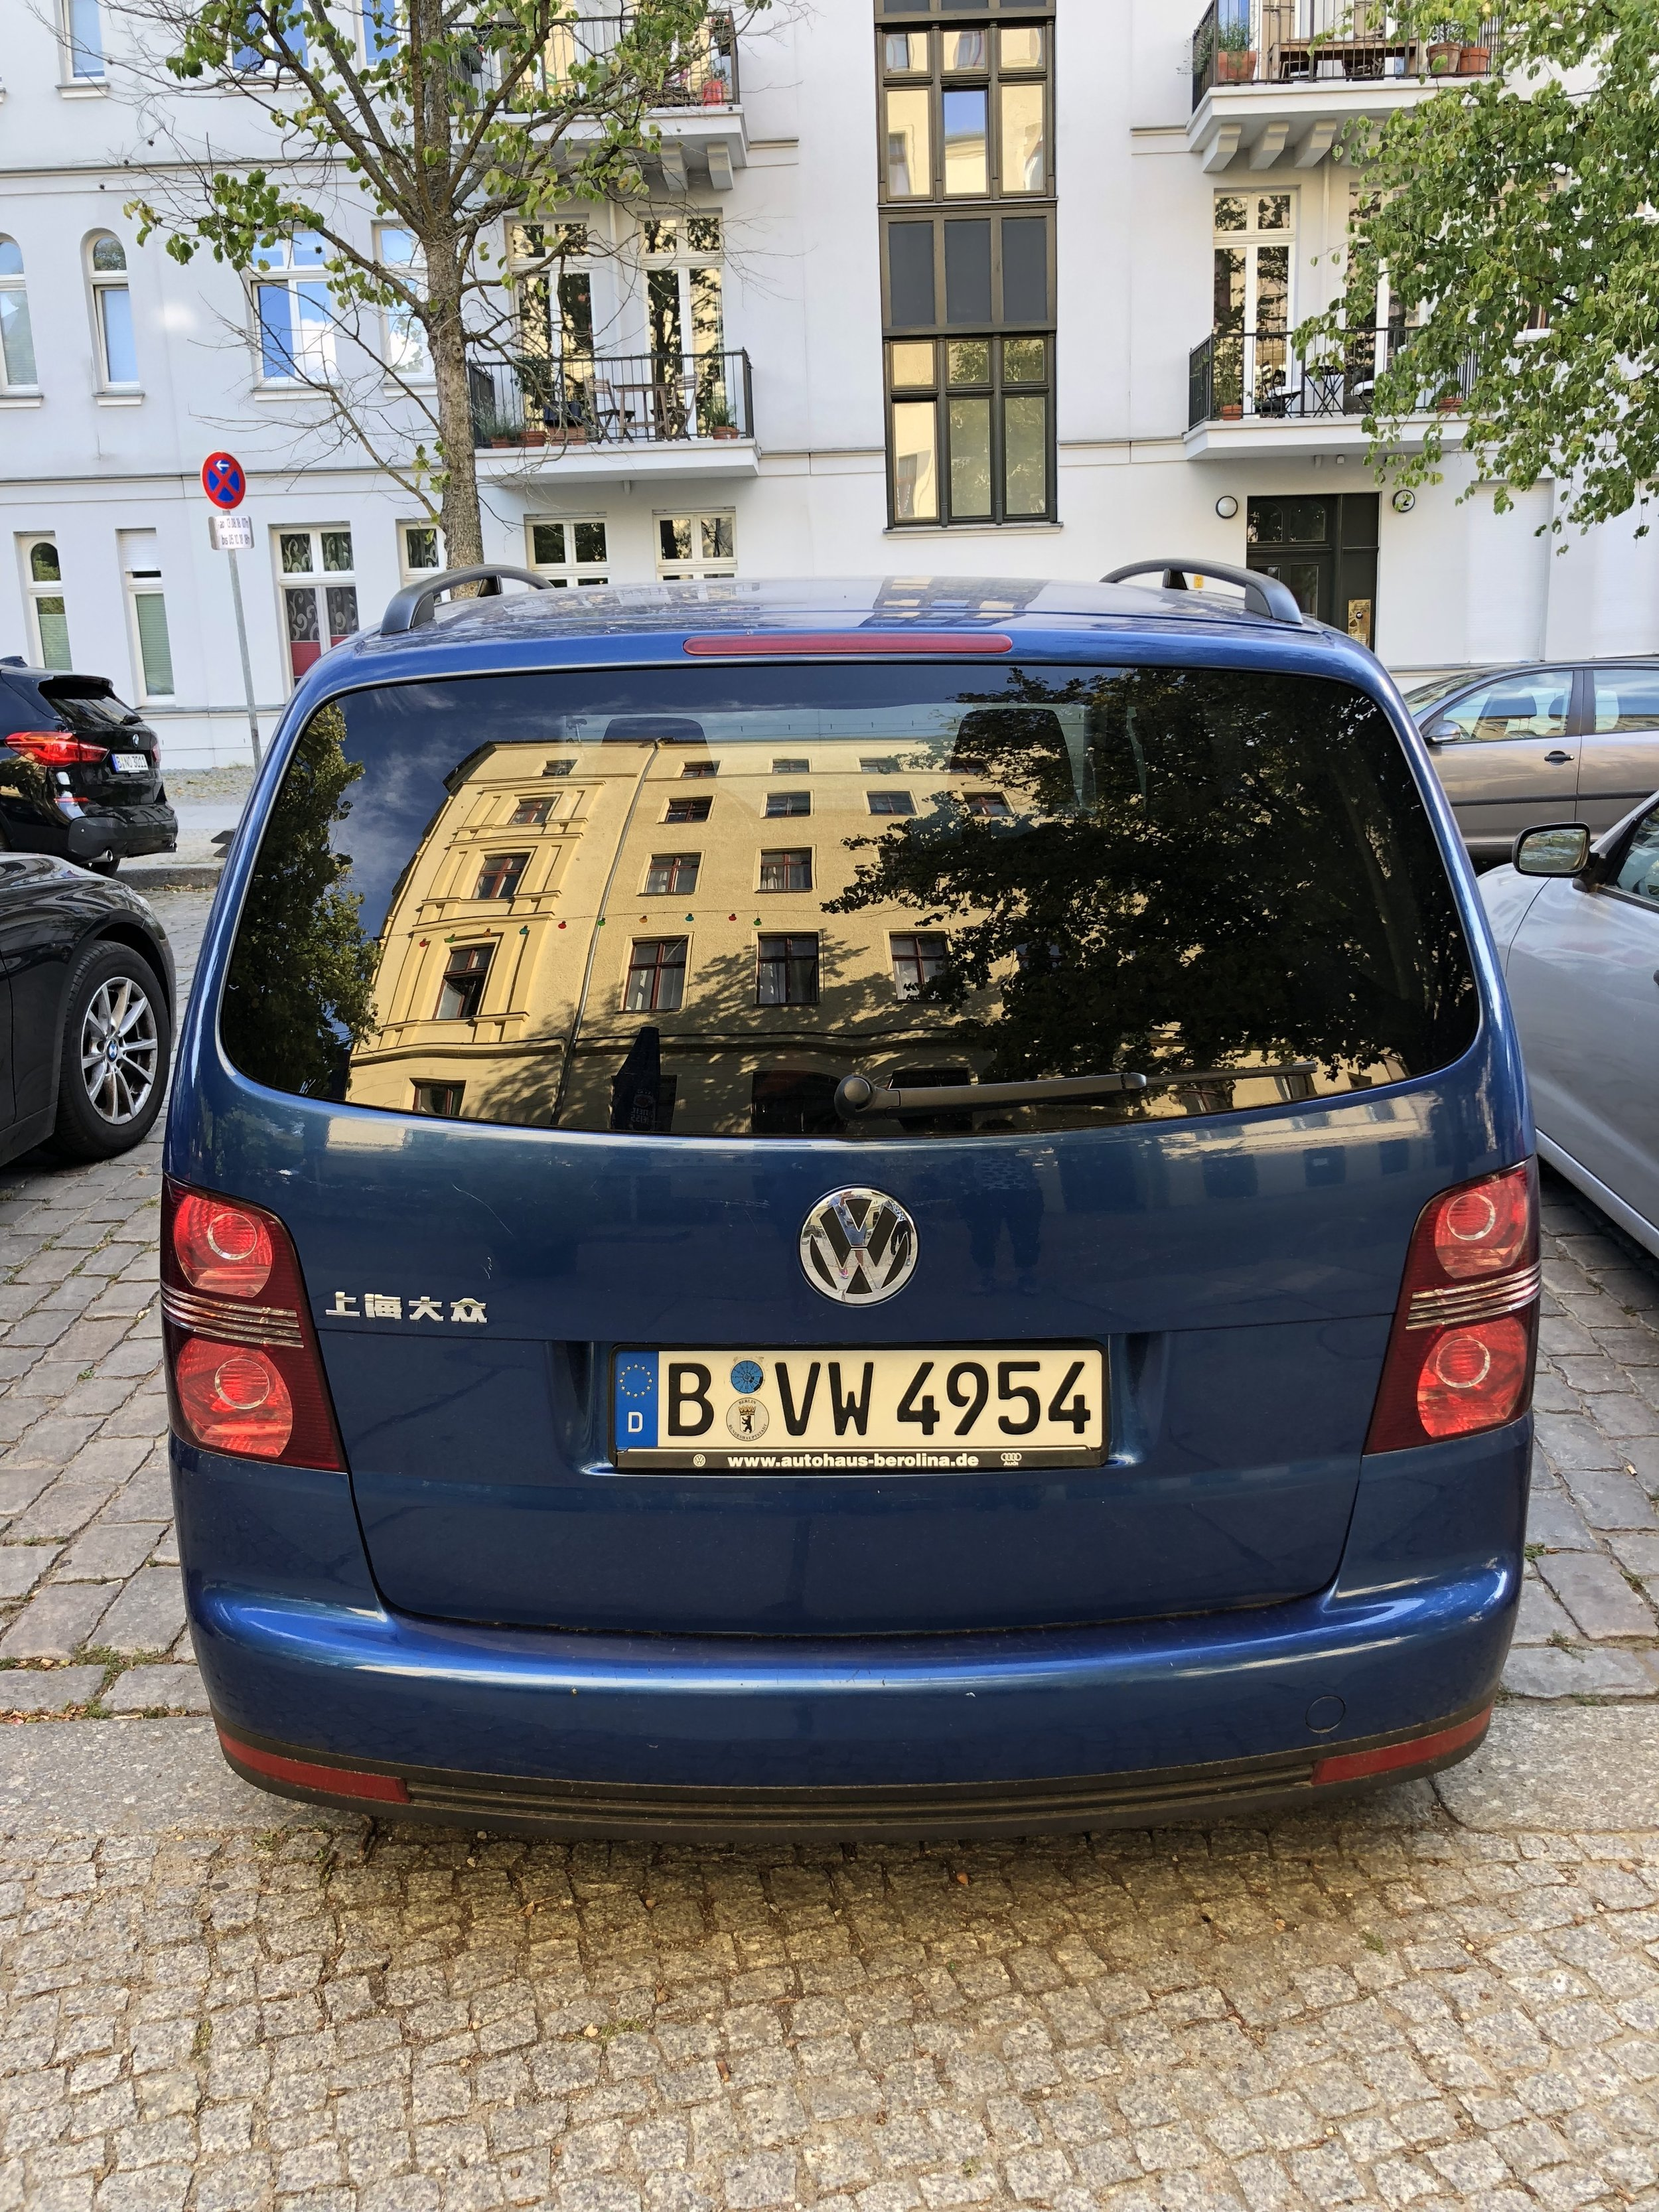 A Chinese VW in Germany?